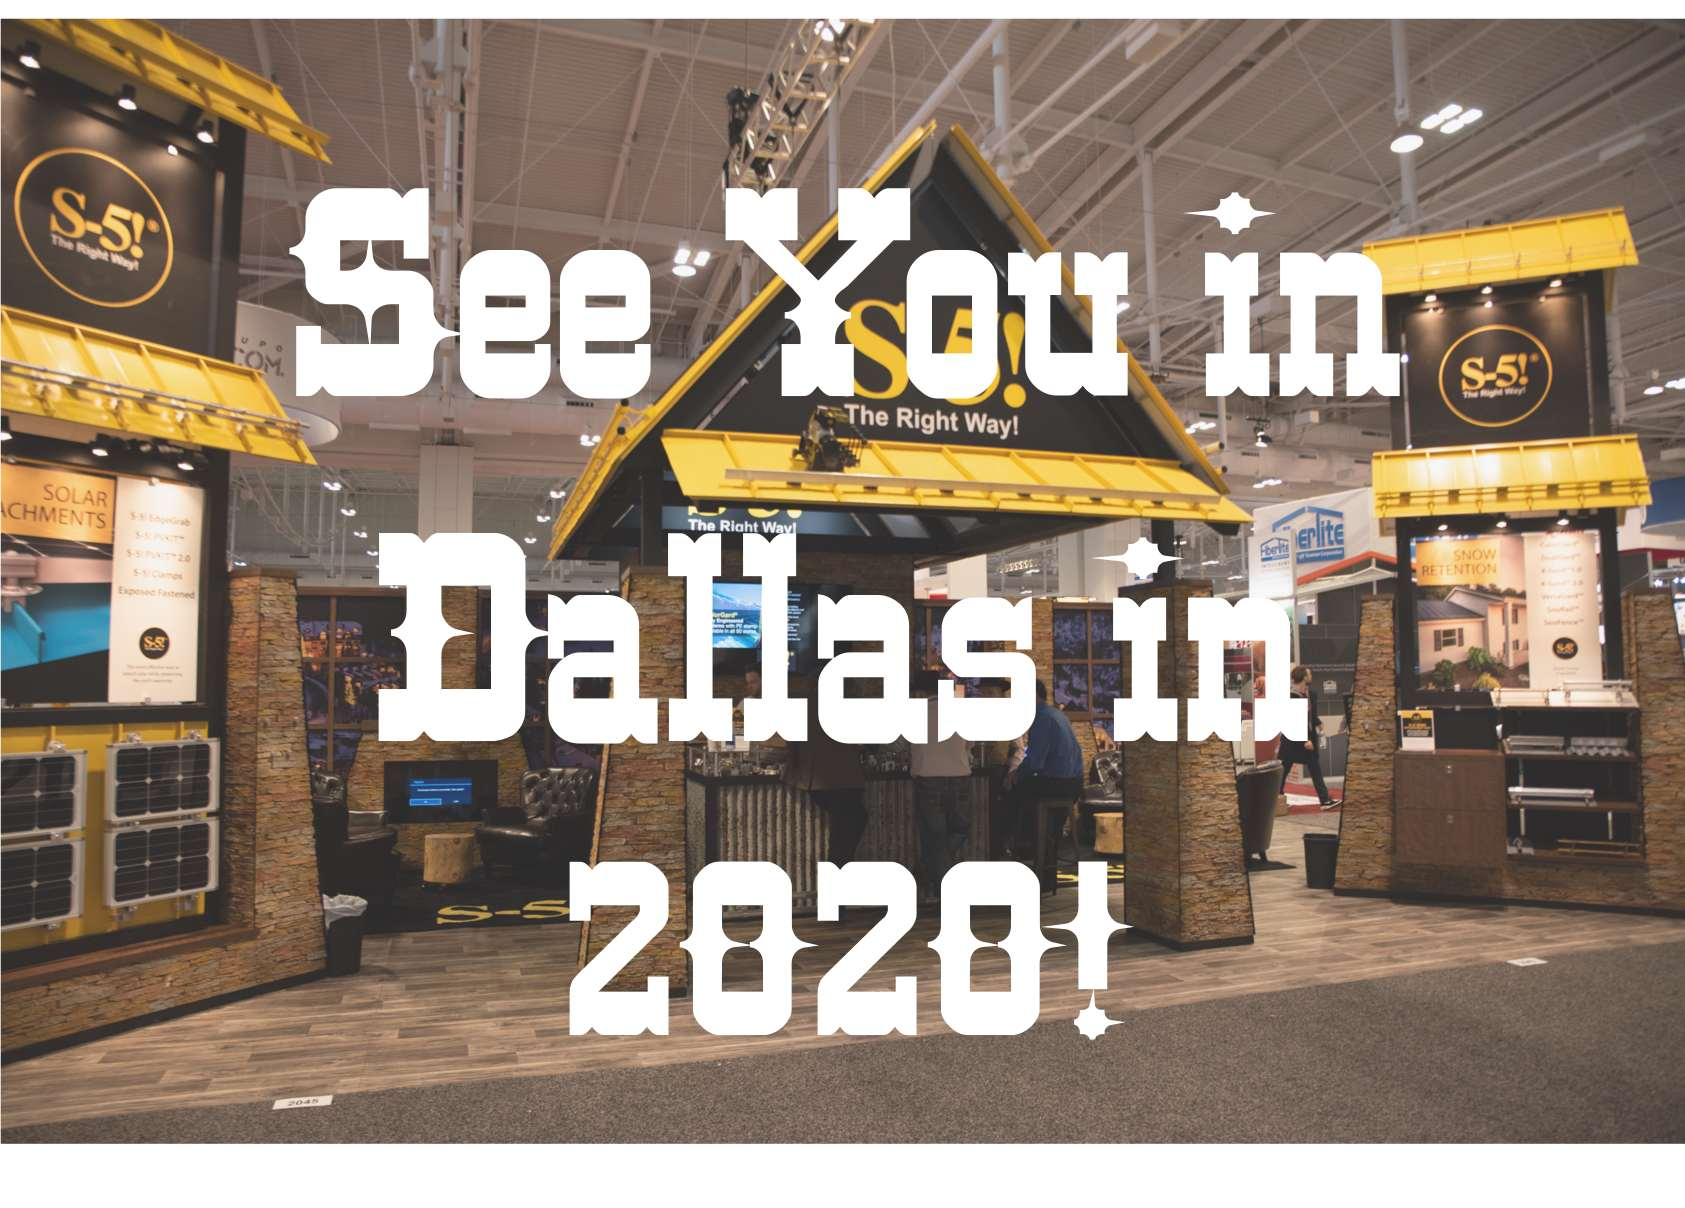 See You in Dallas in 2020! - IRE - S-5!® Booth